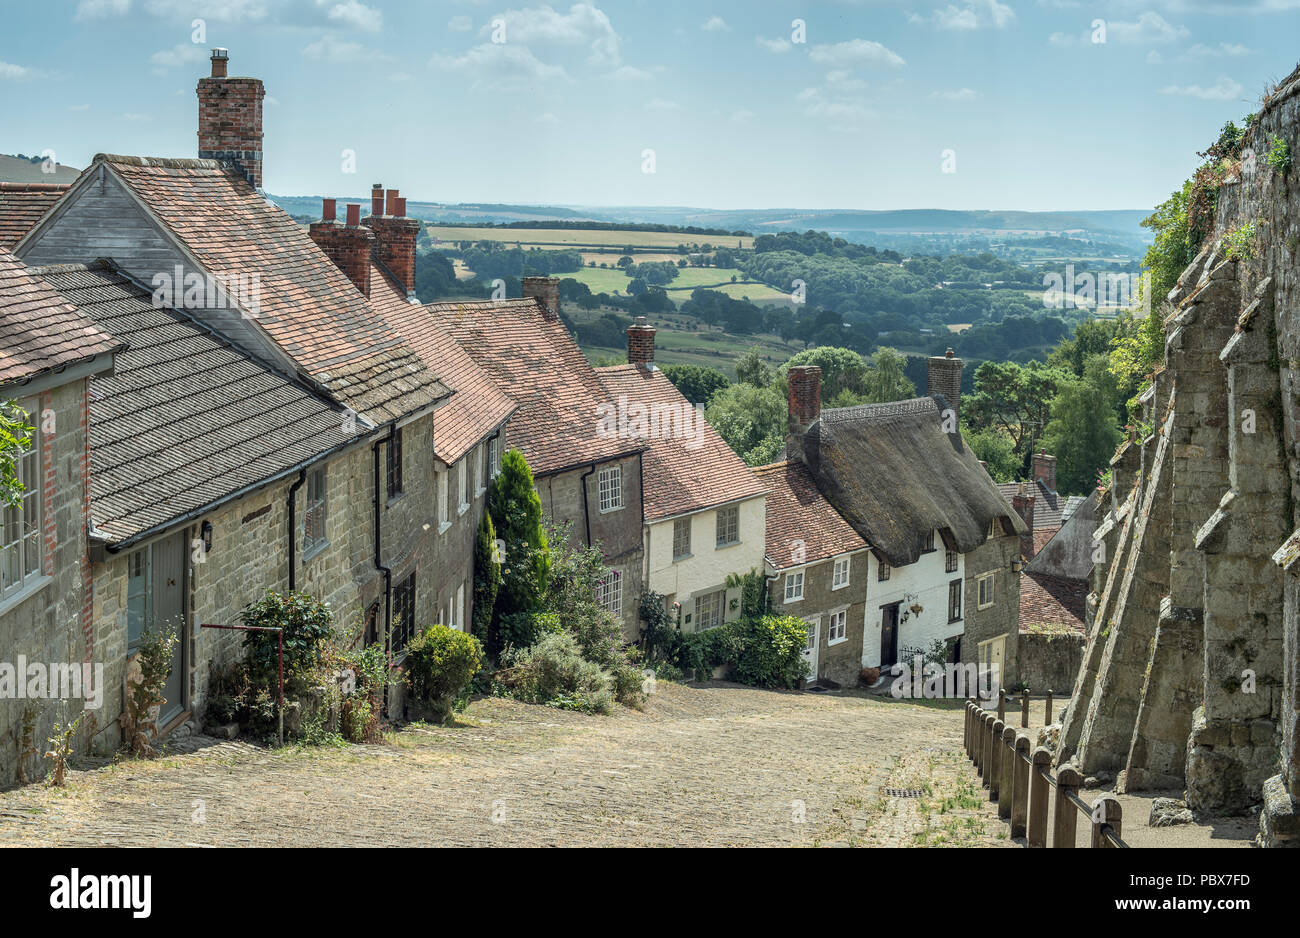 Traditional British English town landscape view with thatched cottages, old houses and farmland - Stock Image